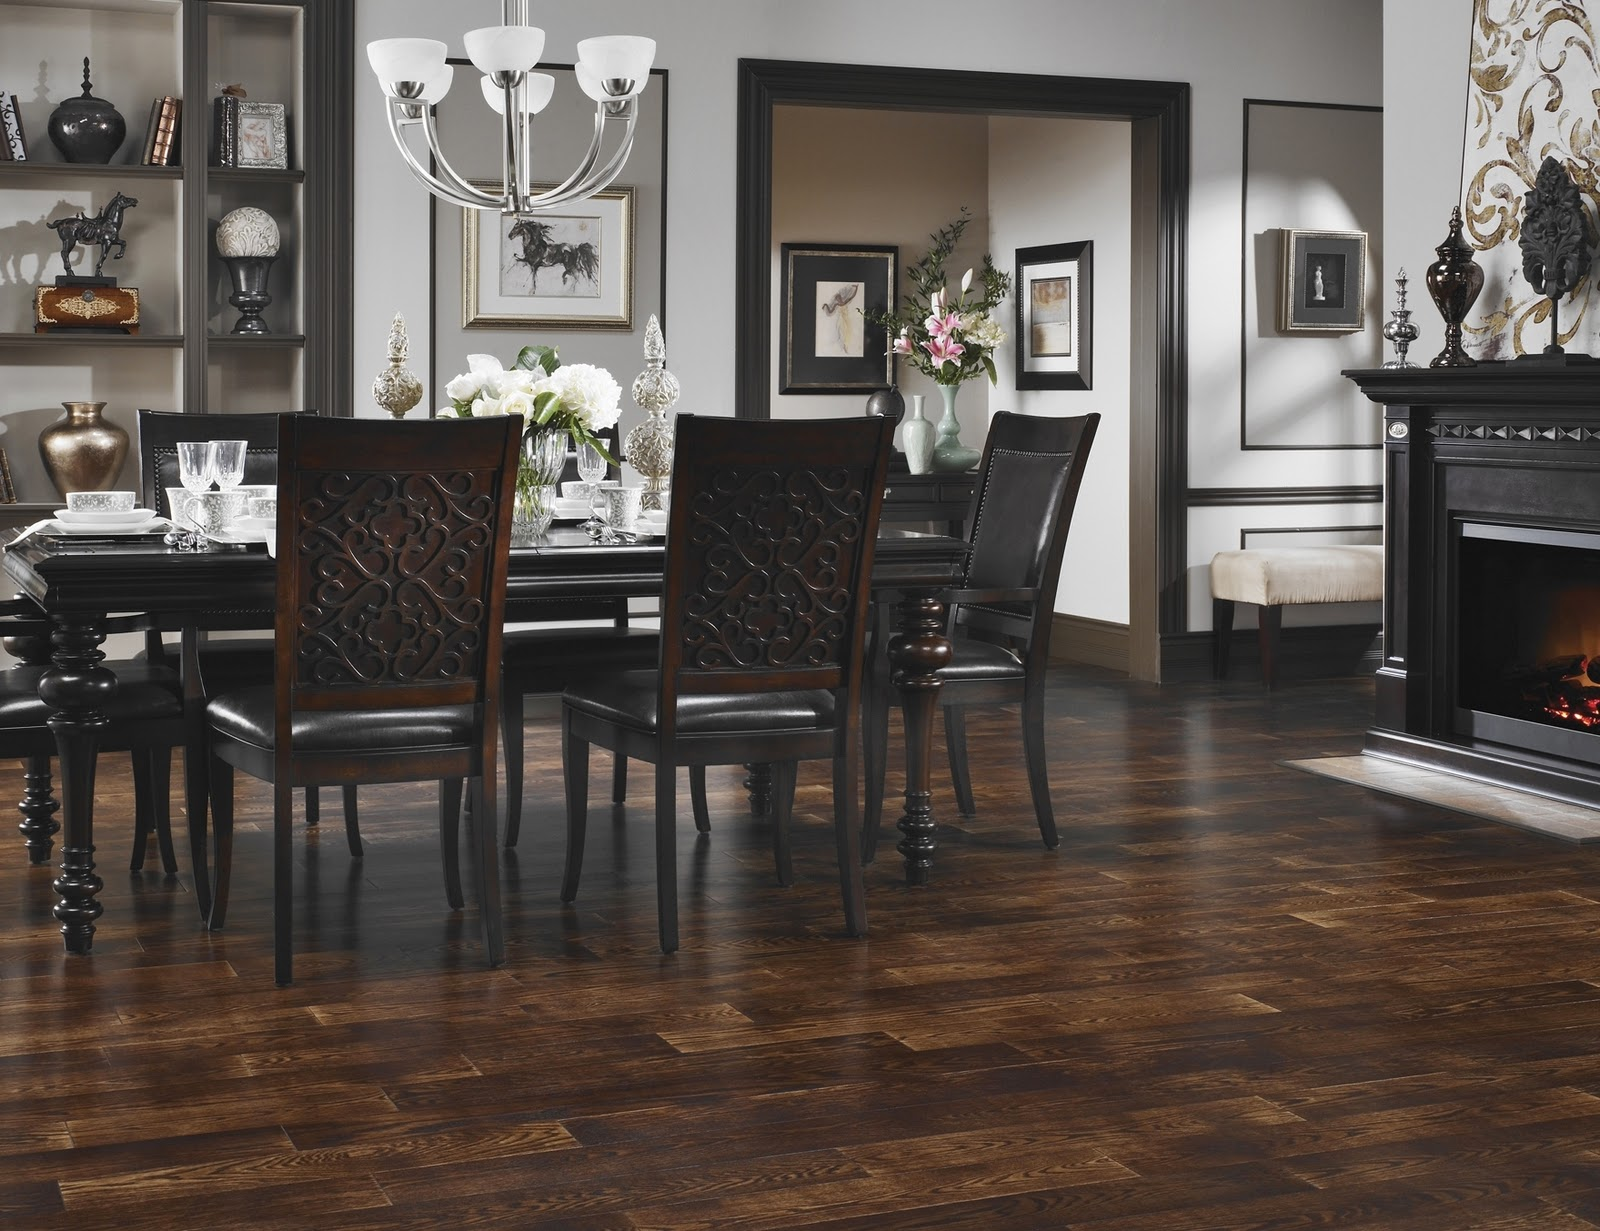 Rooms with Dark Hardwood Floors-1.bp.blogspot.com